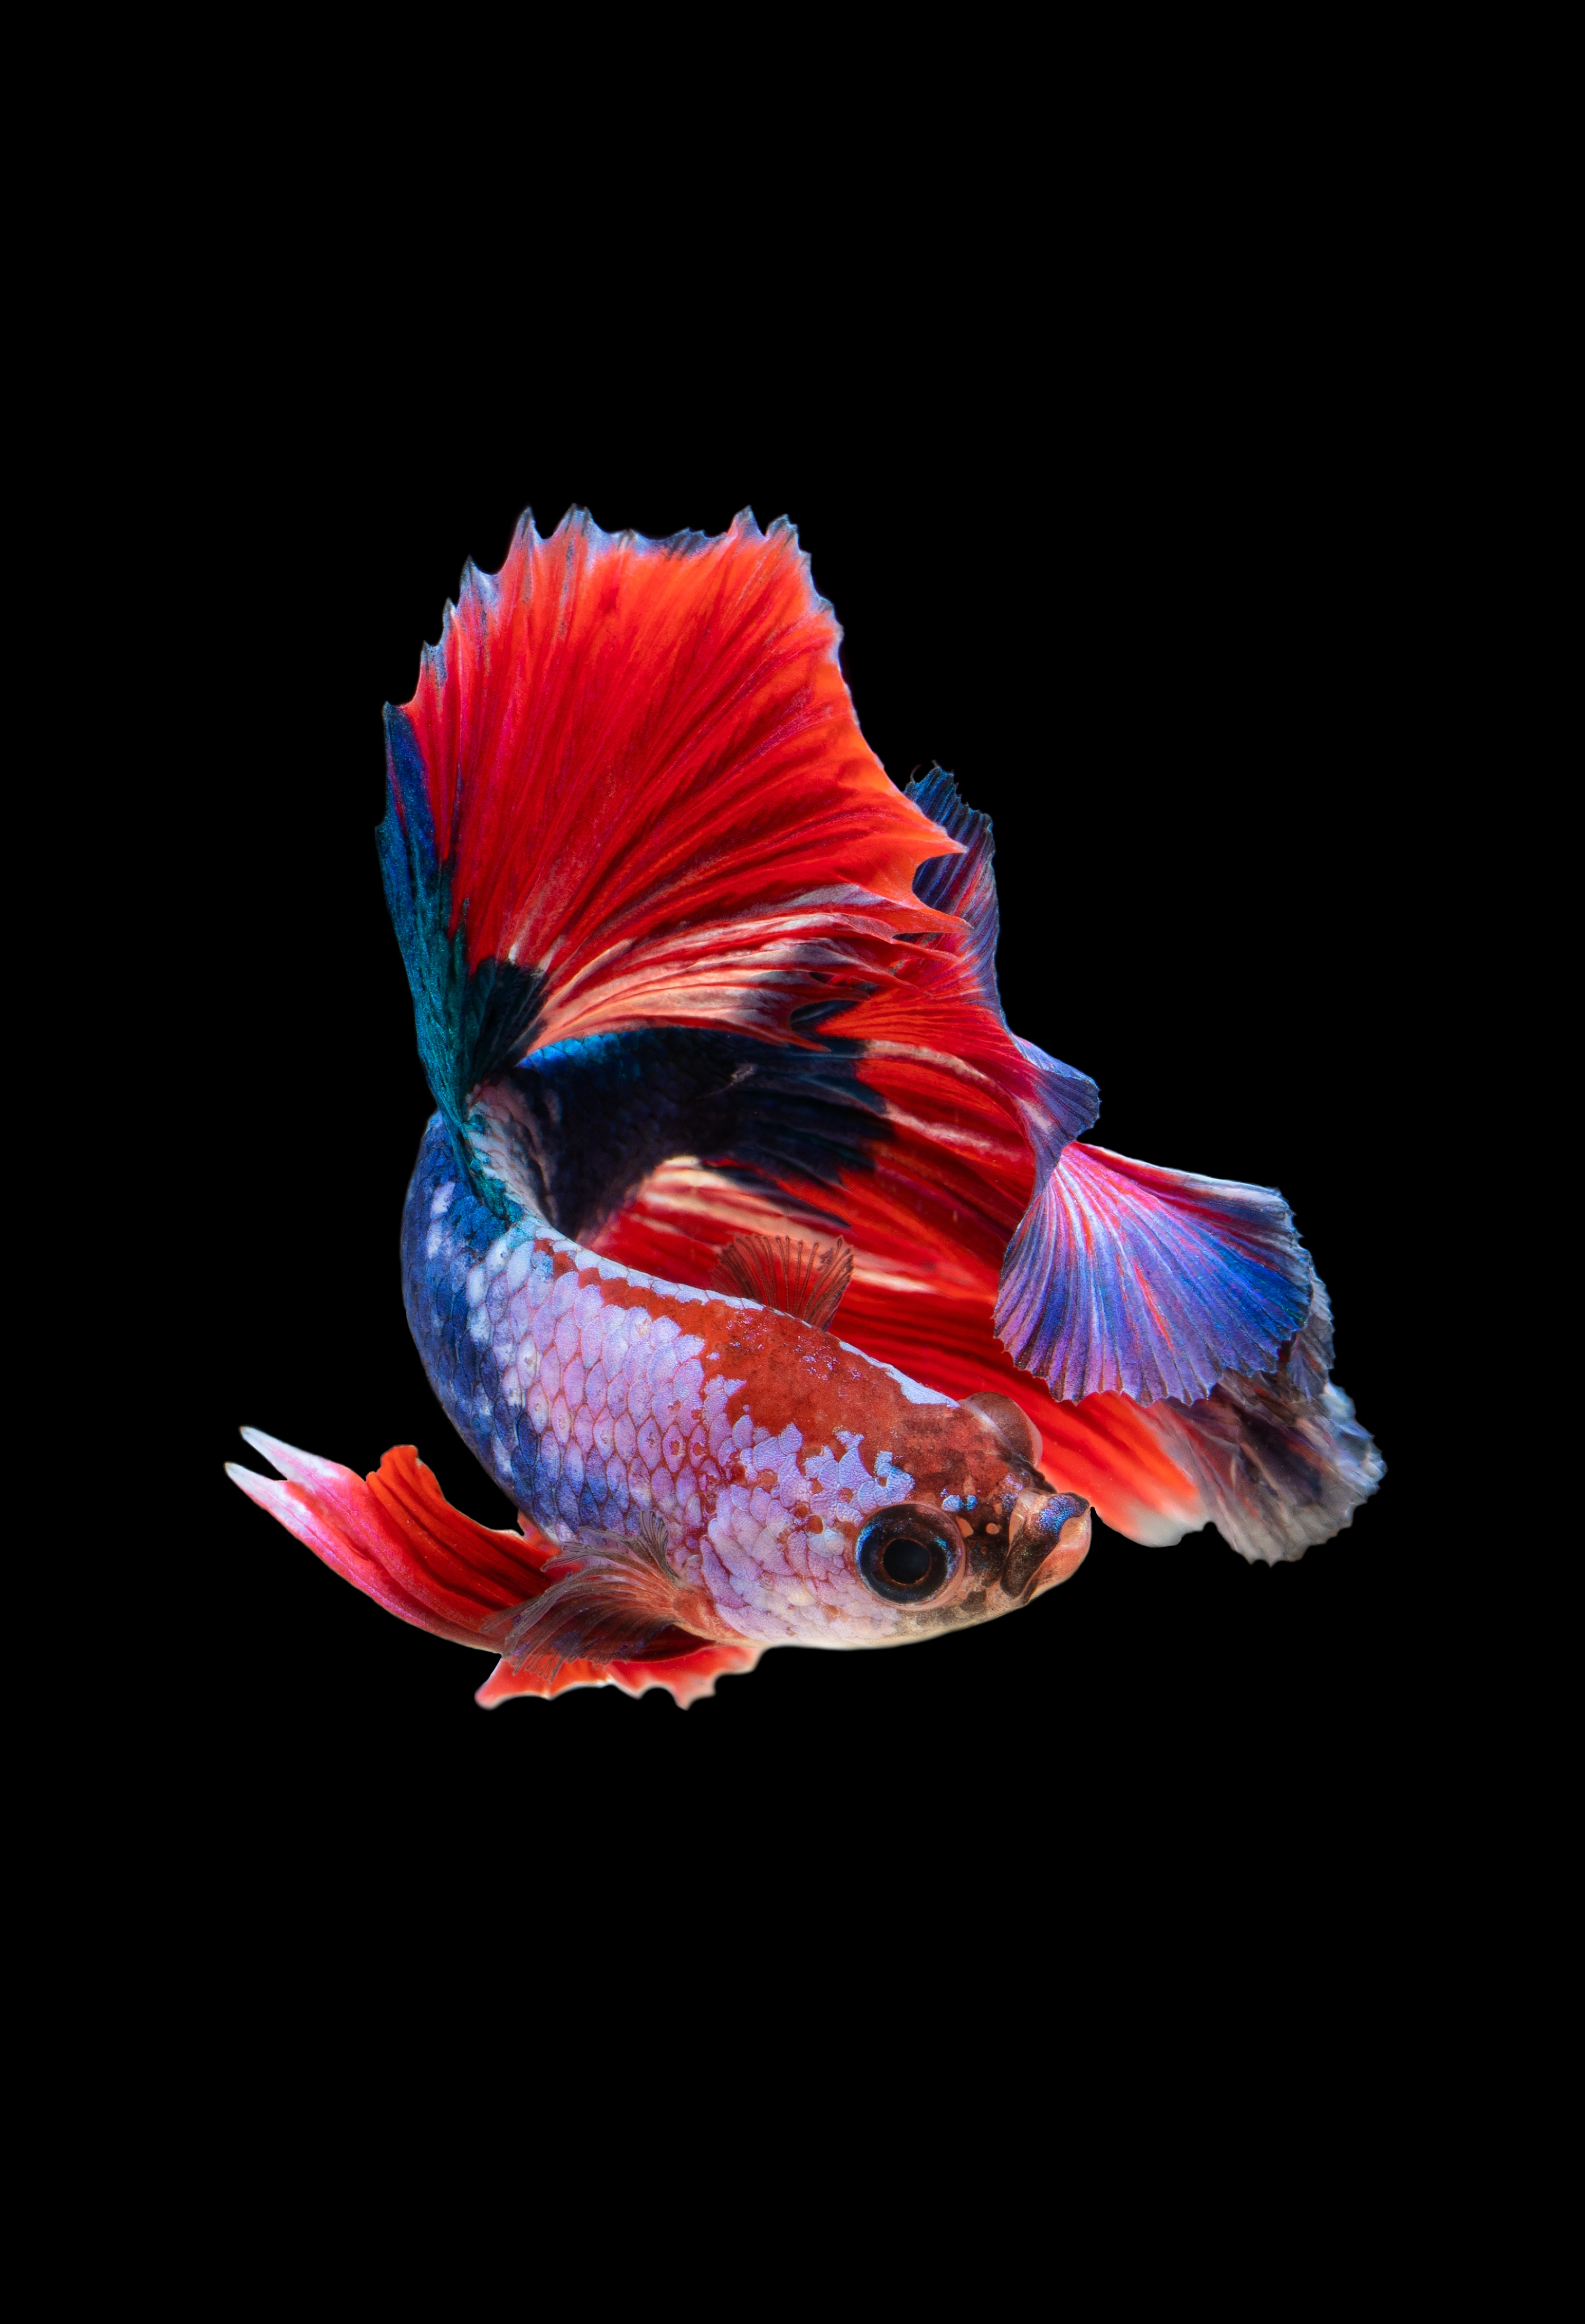 124945 Screensavers and Wallpapers Aquarium for phone. Download Animals, Dark Background, Aquarium, Small Fish, Fishy pictures for free